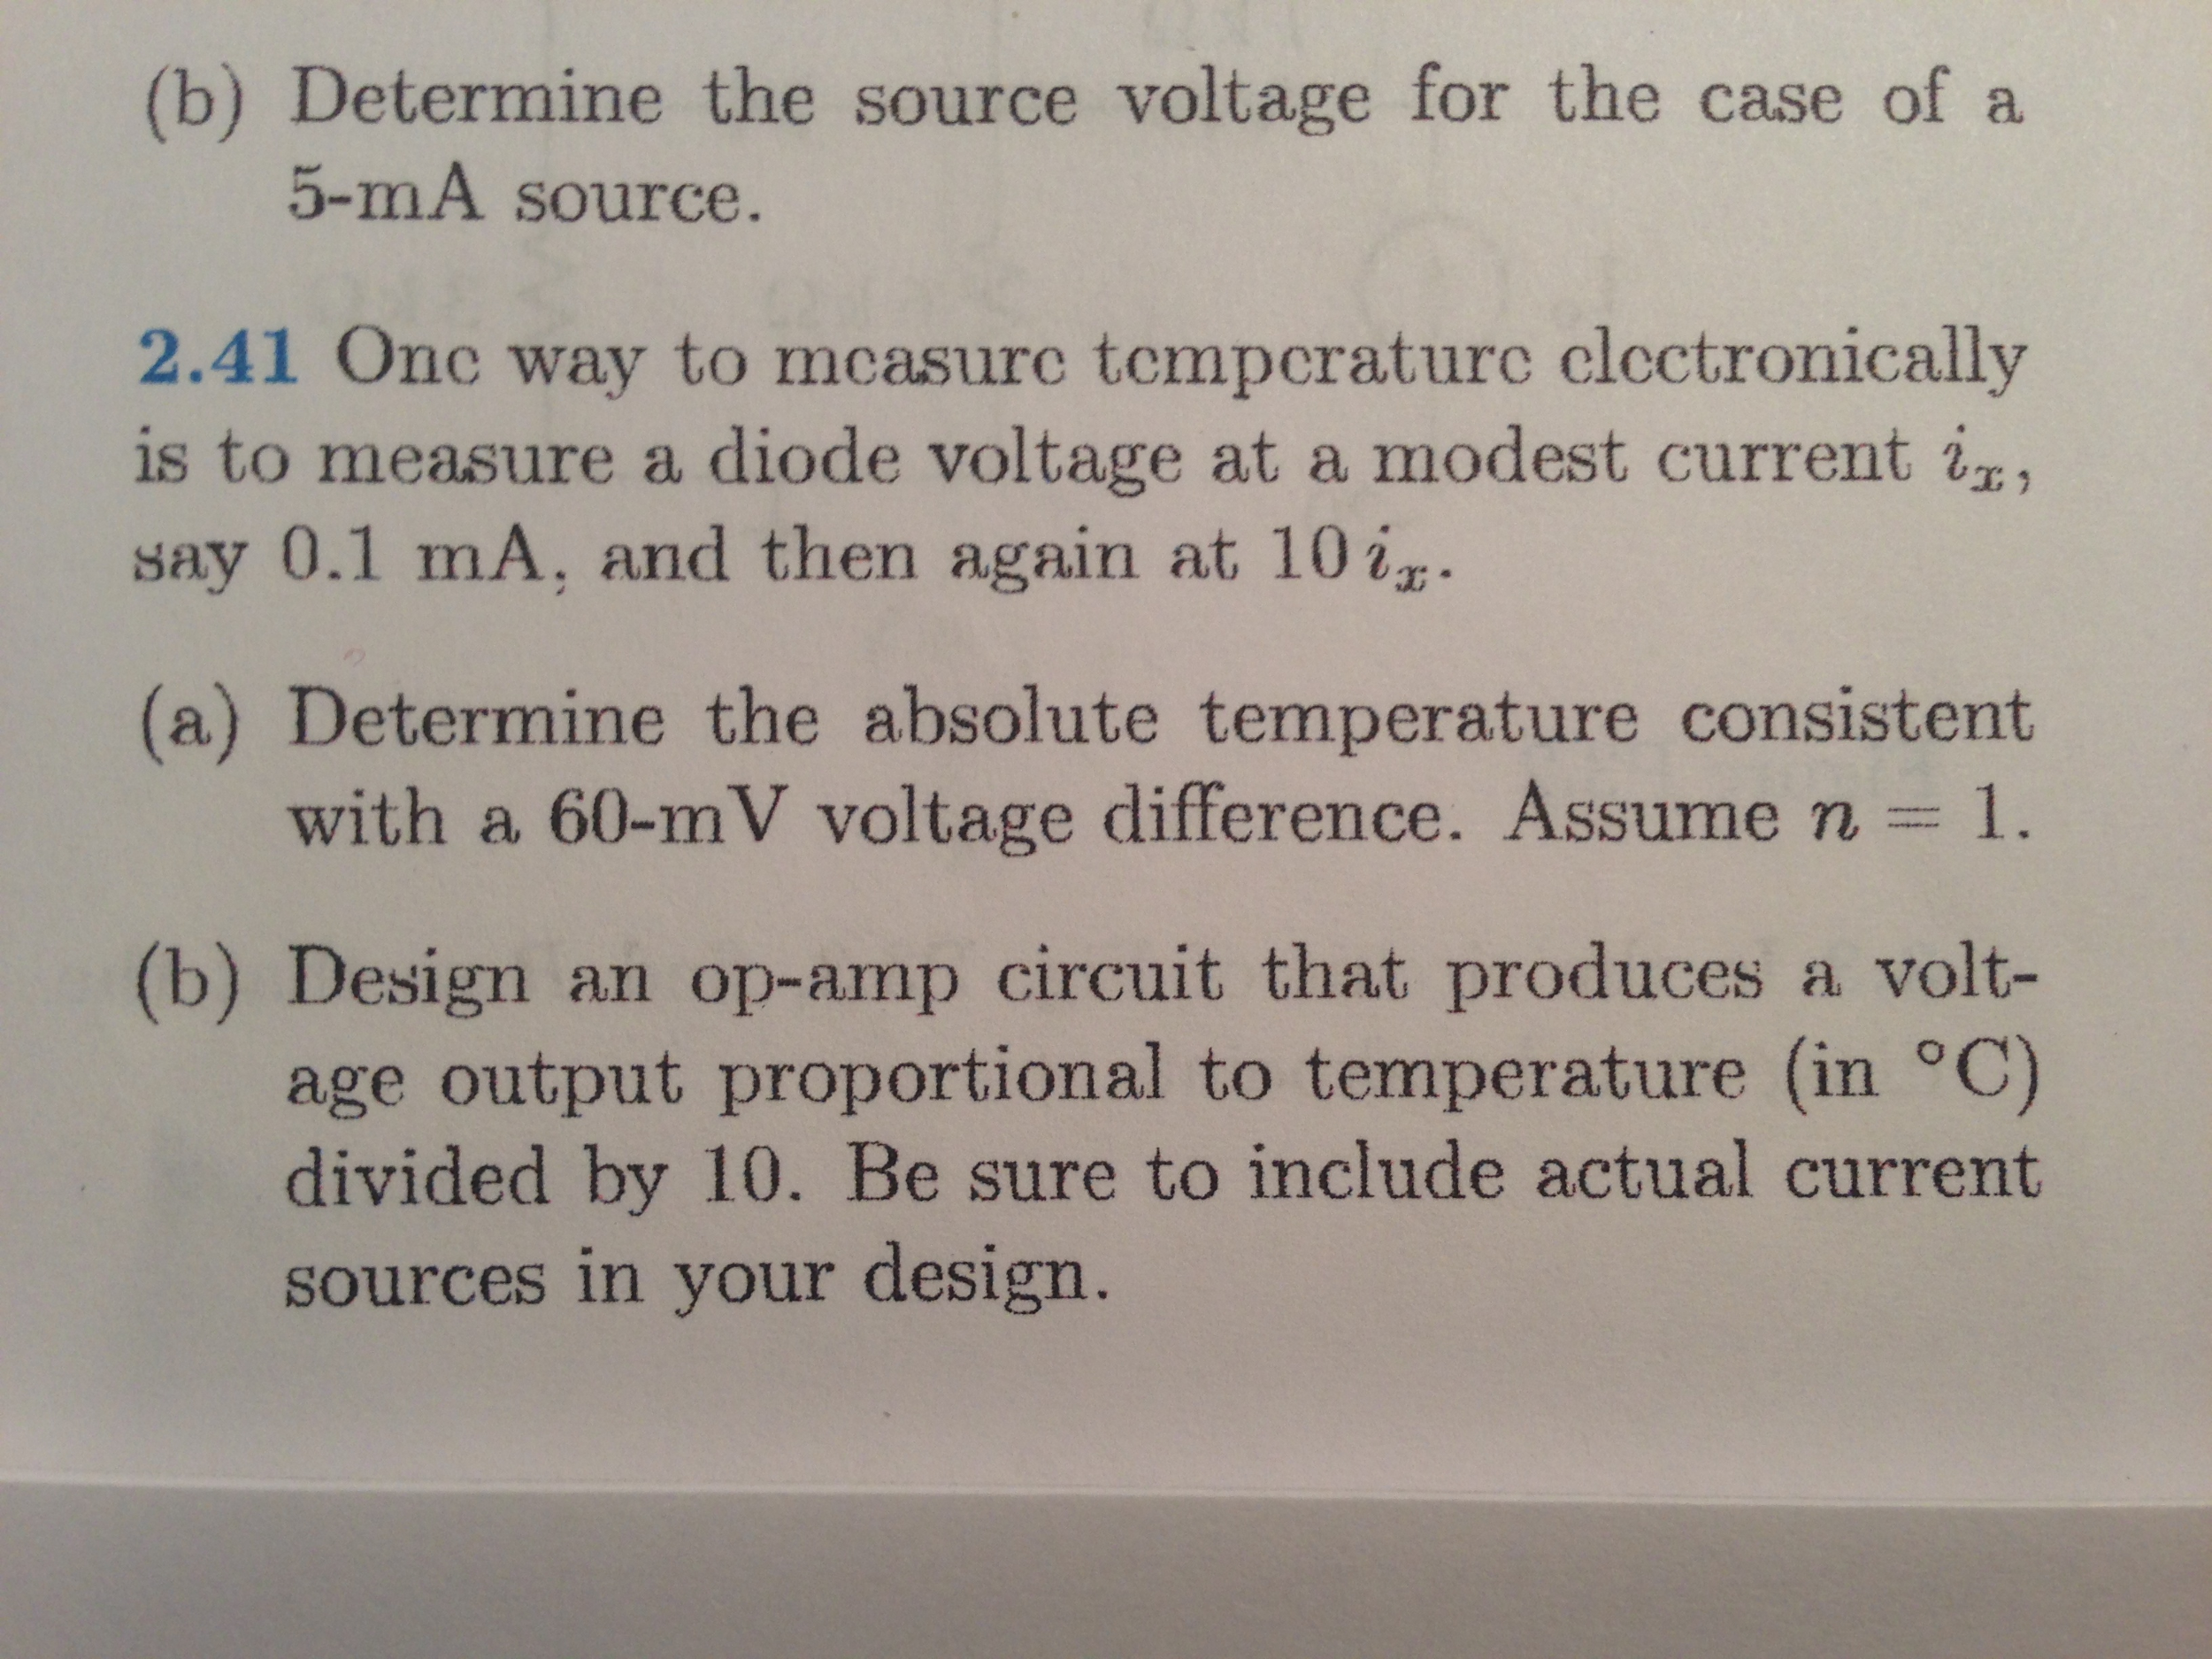 Determine the source voltage for the case of a 5-m